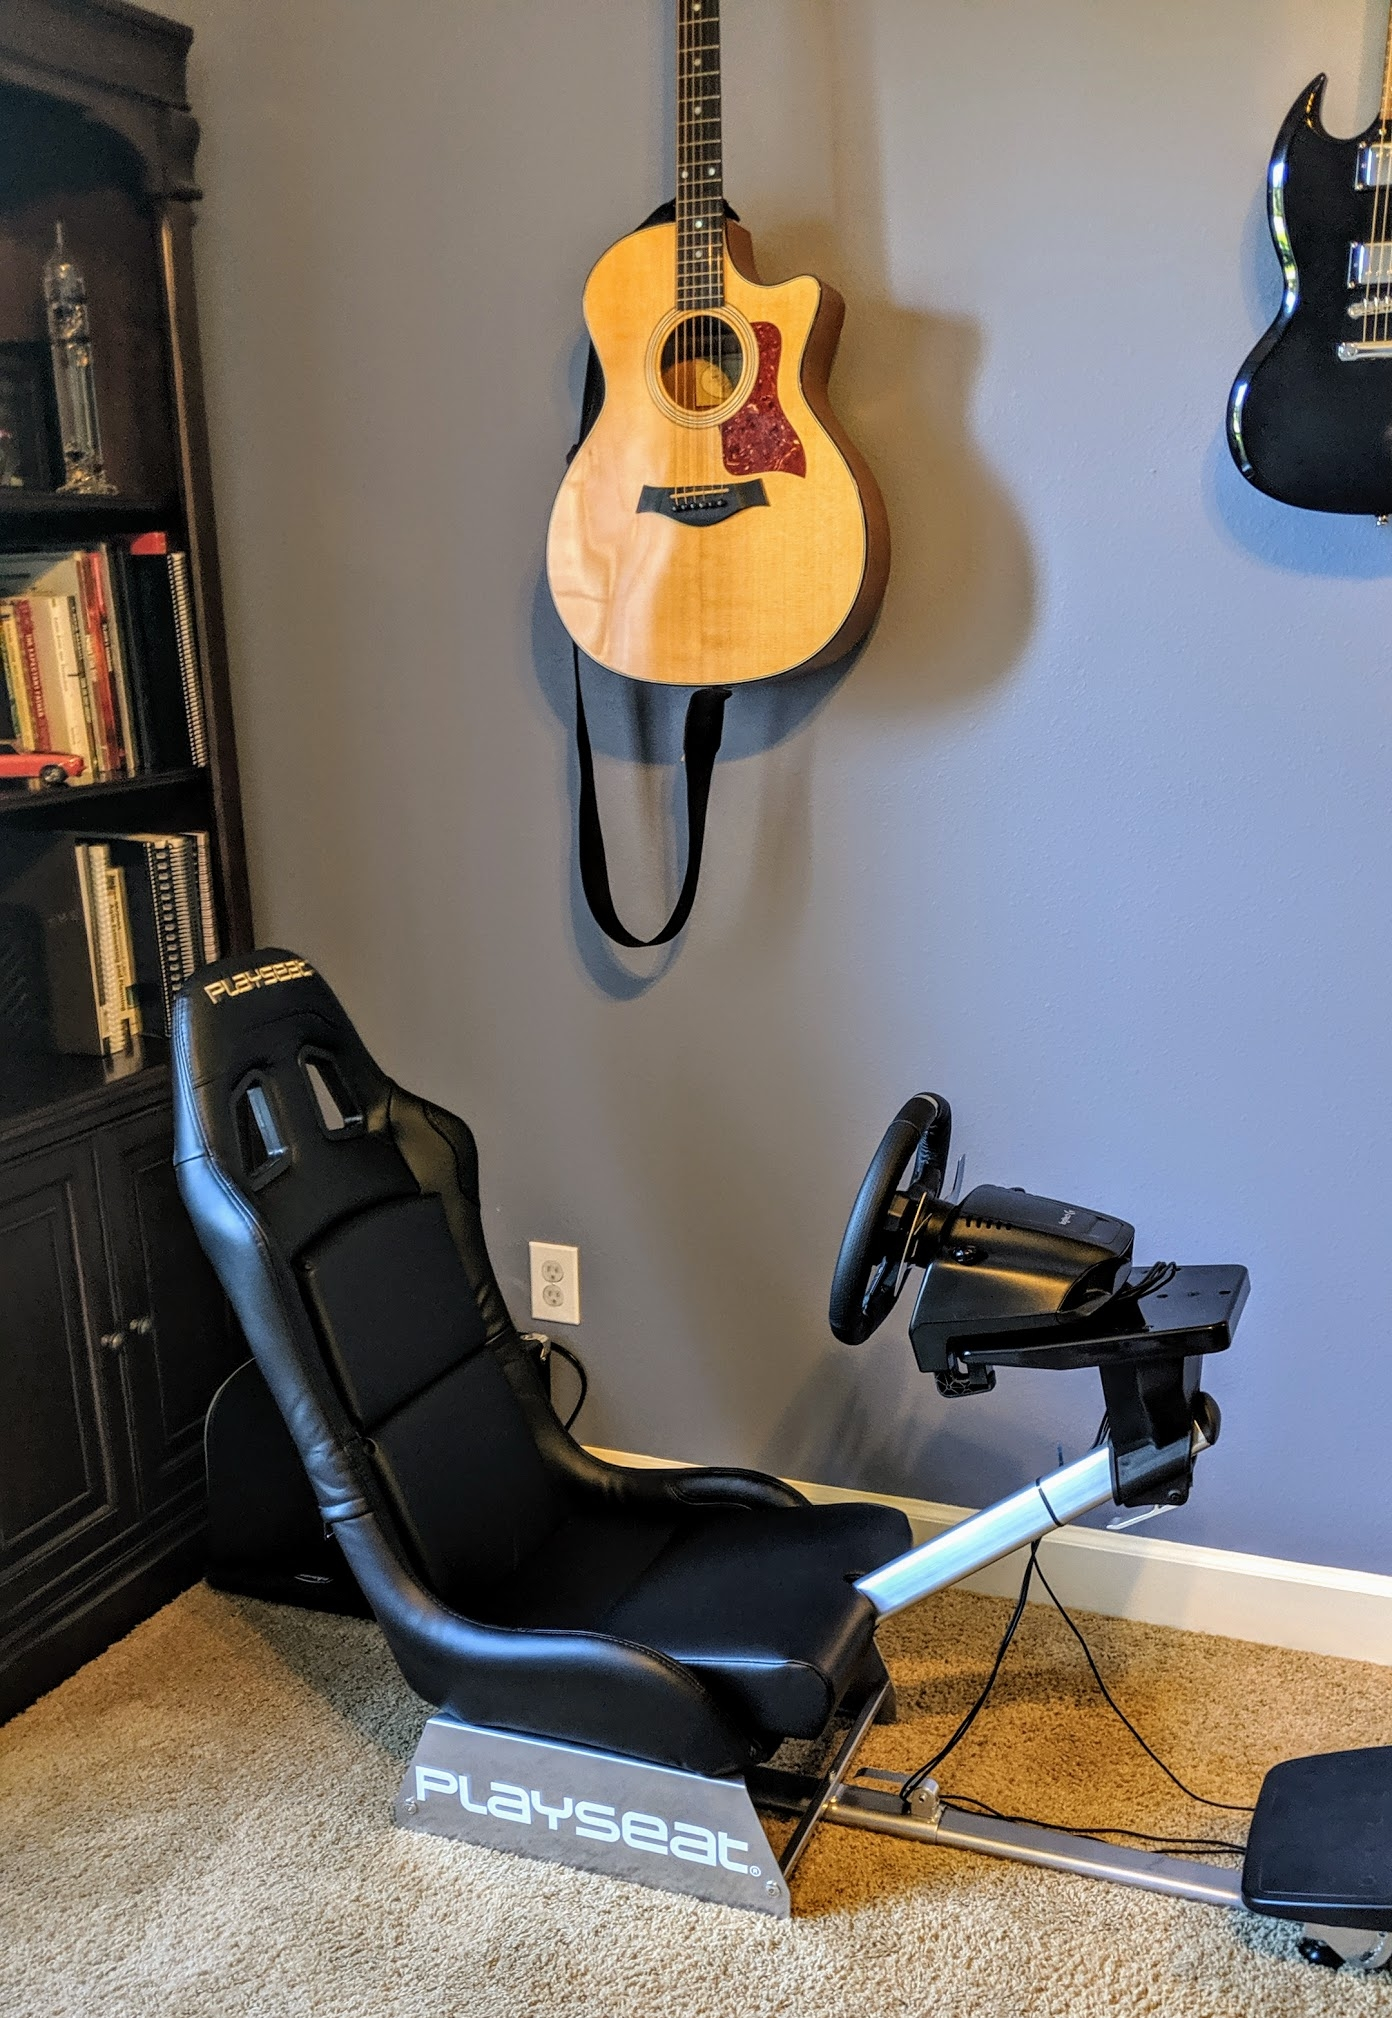 Perfect Seat for Sim Racing - Comfortable for All Sizes